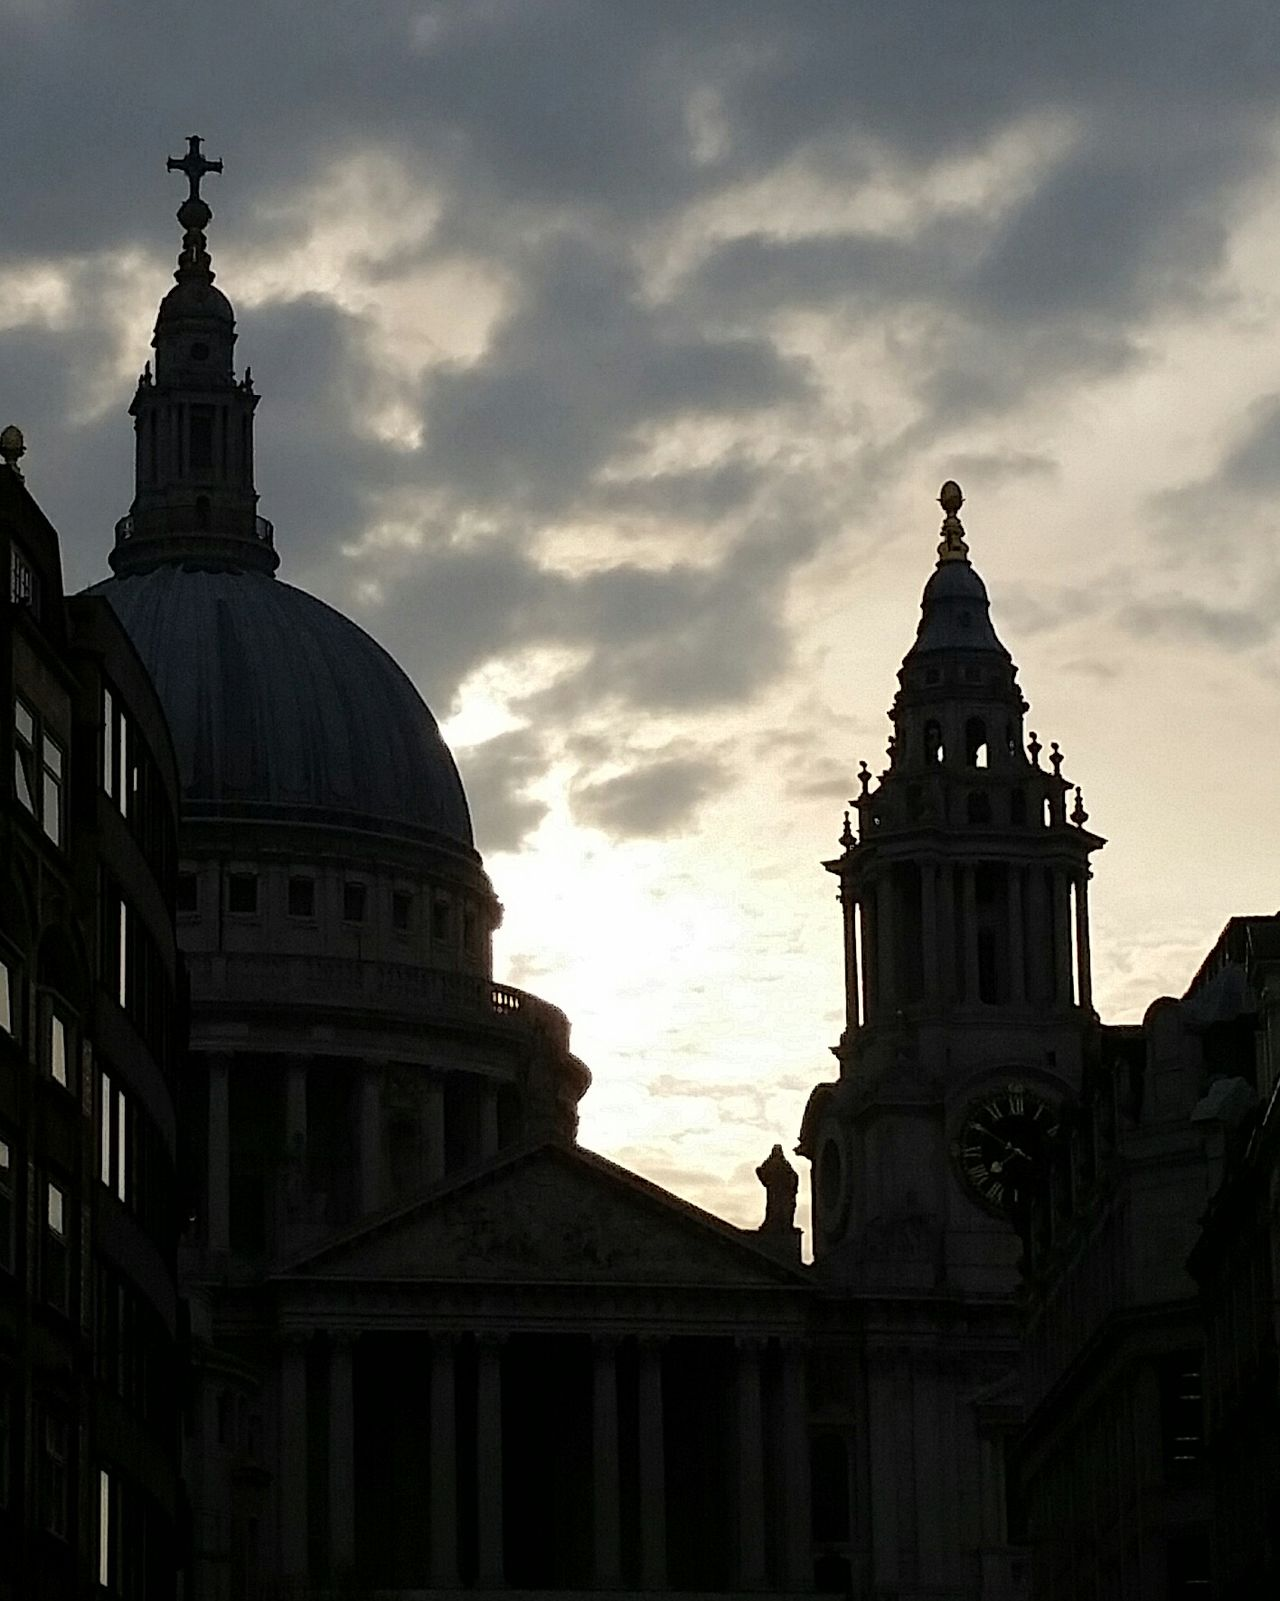 City Of London Tourism City Of London Silhoutte Photography Sky And Clouds Sky LONDON❤ Londonlife London Tourism London Photography Cathedral London Architecture Silouette & Sky Sunrise Cityoflondon